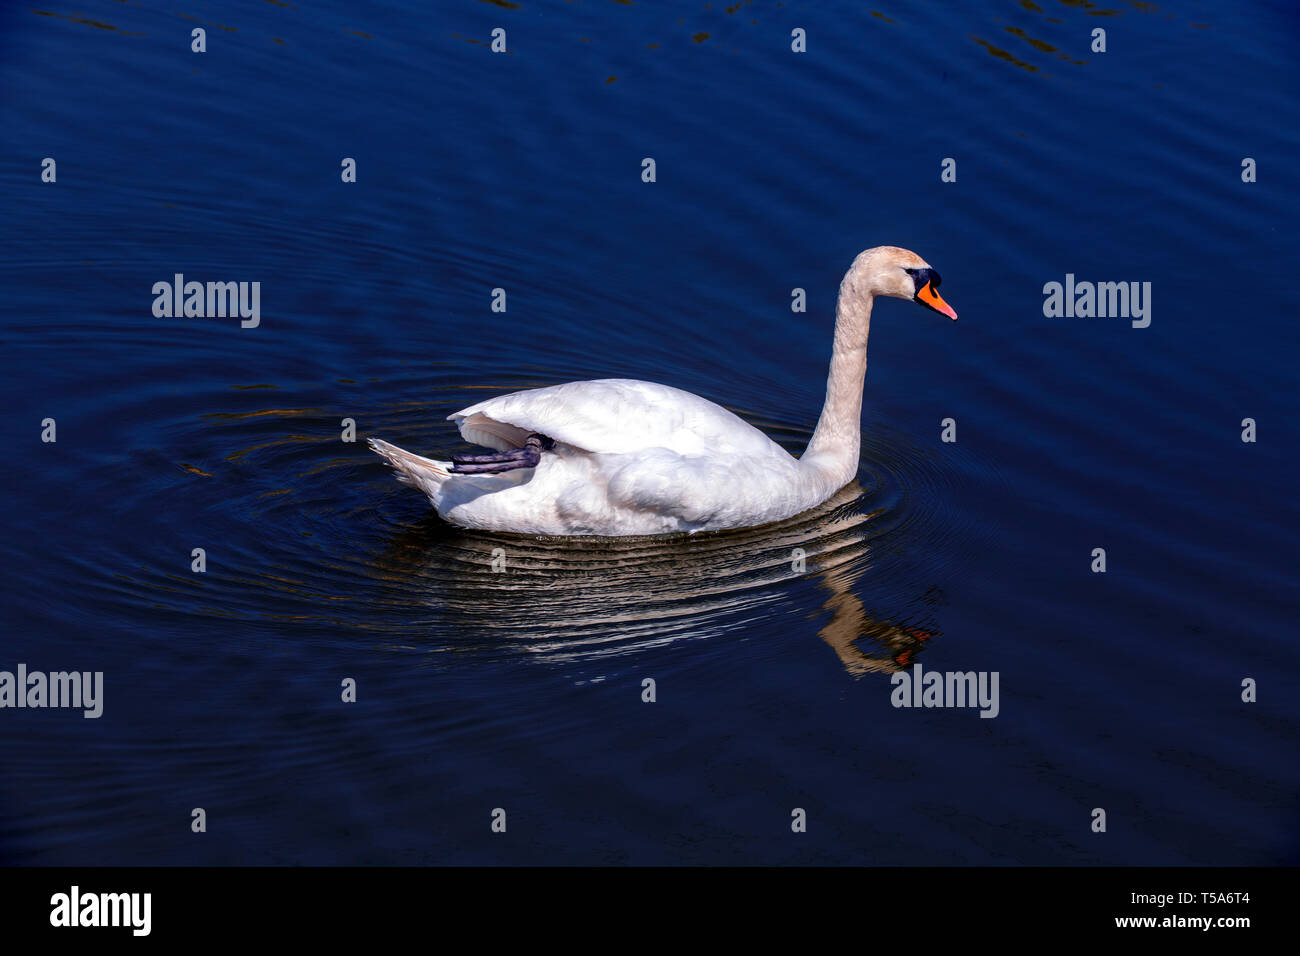 Beautiful swan on a lake at the Hampton's Nature Reserve, Worcester Park, London, England - Stock Image